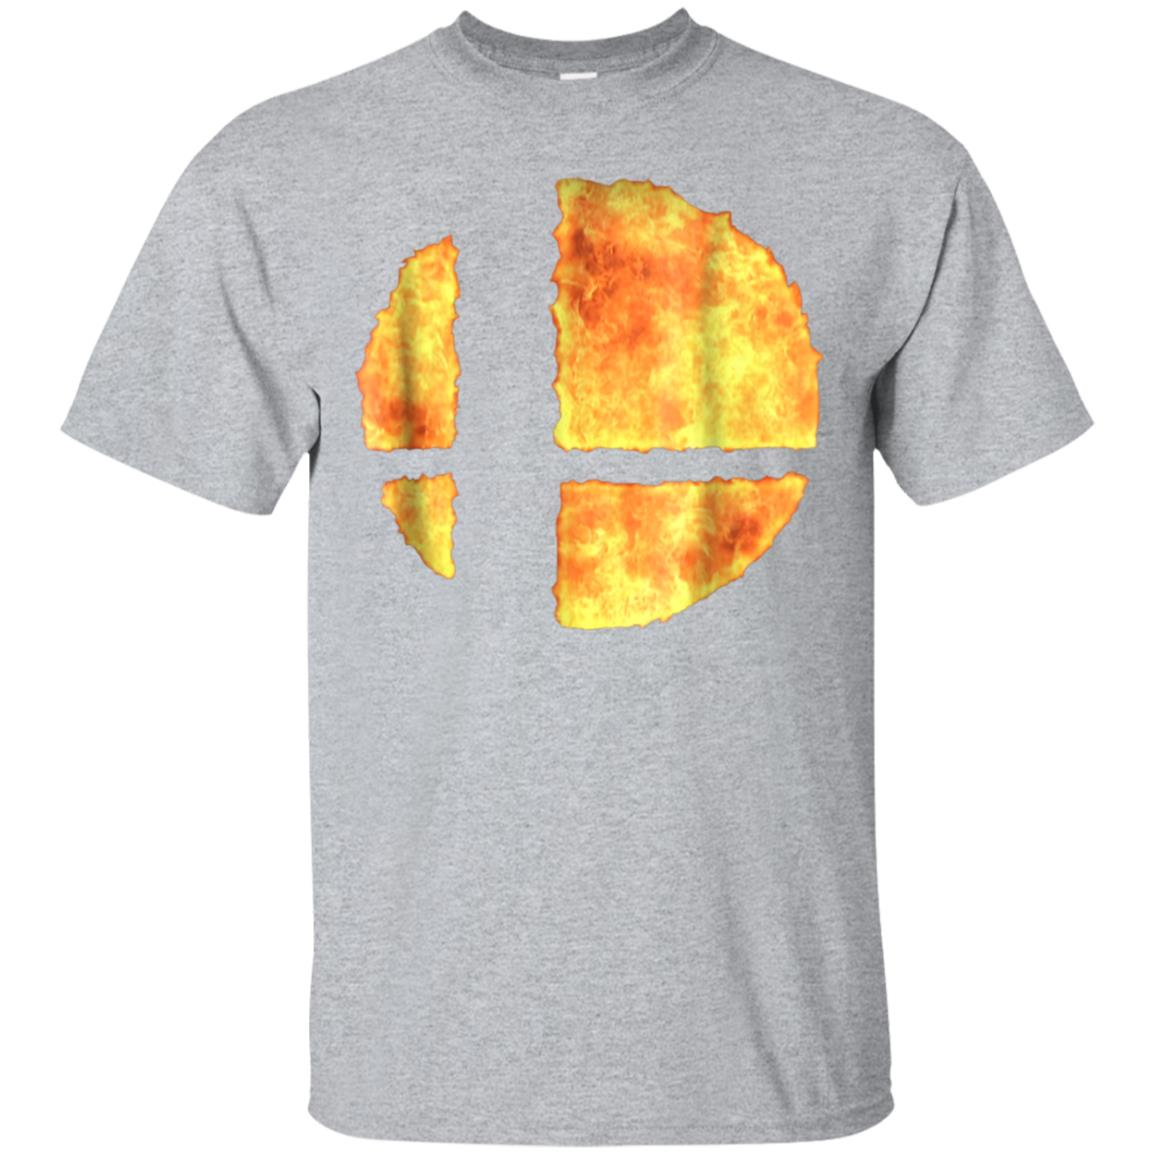 fire ball tee t-shirt for men women 99promocode